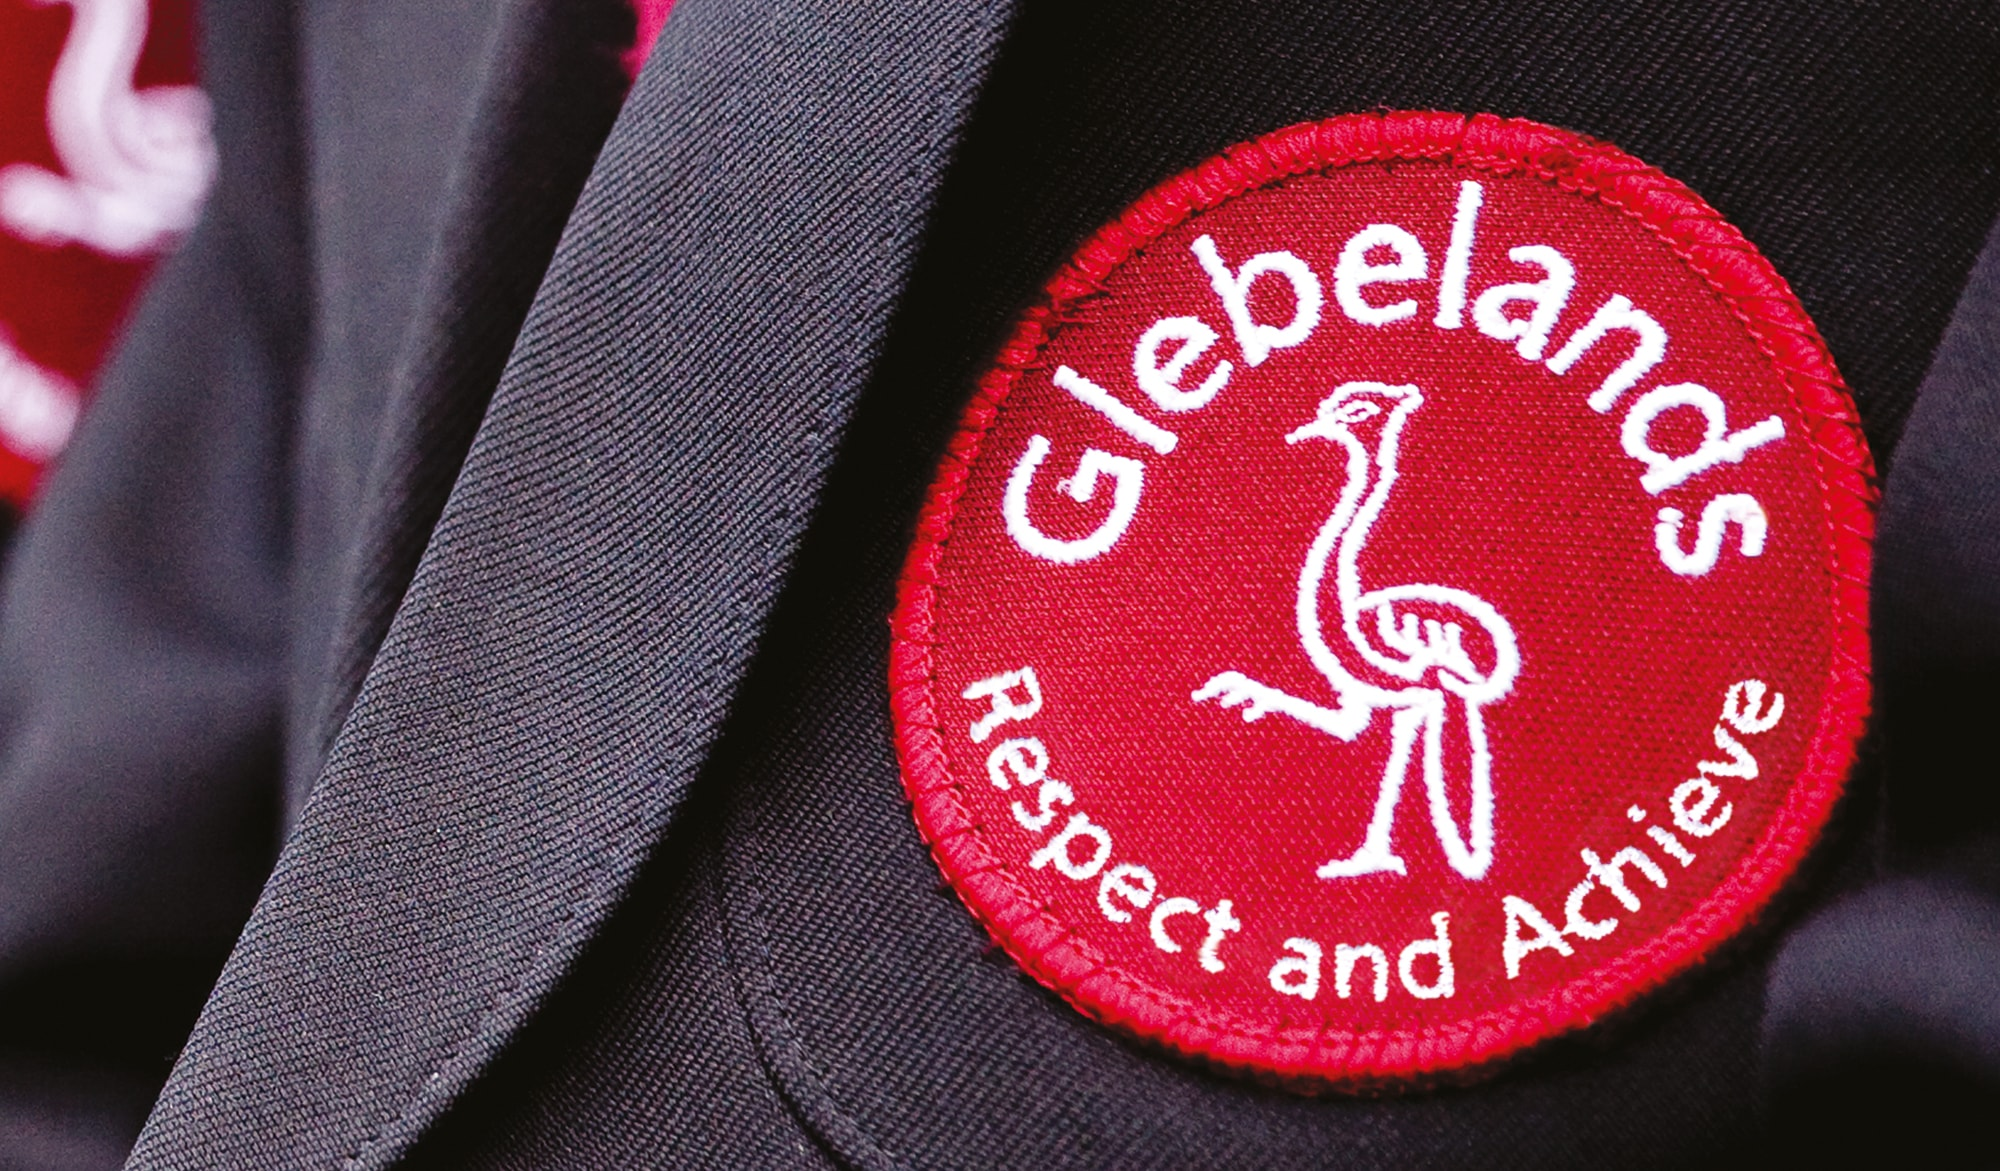 Glebelands school - logo